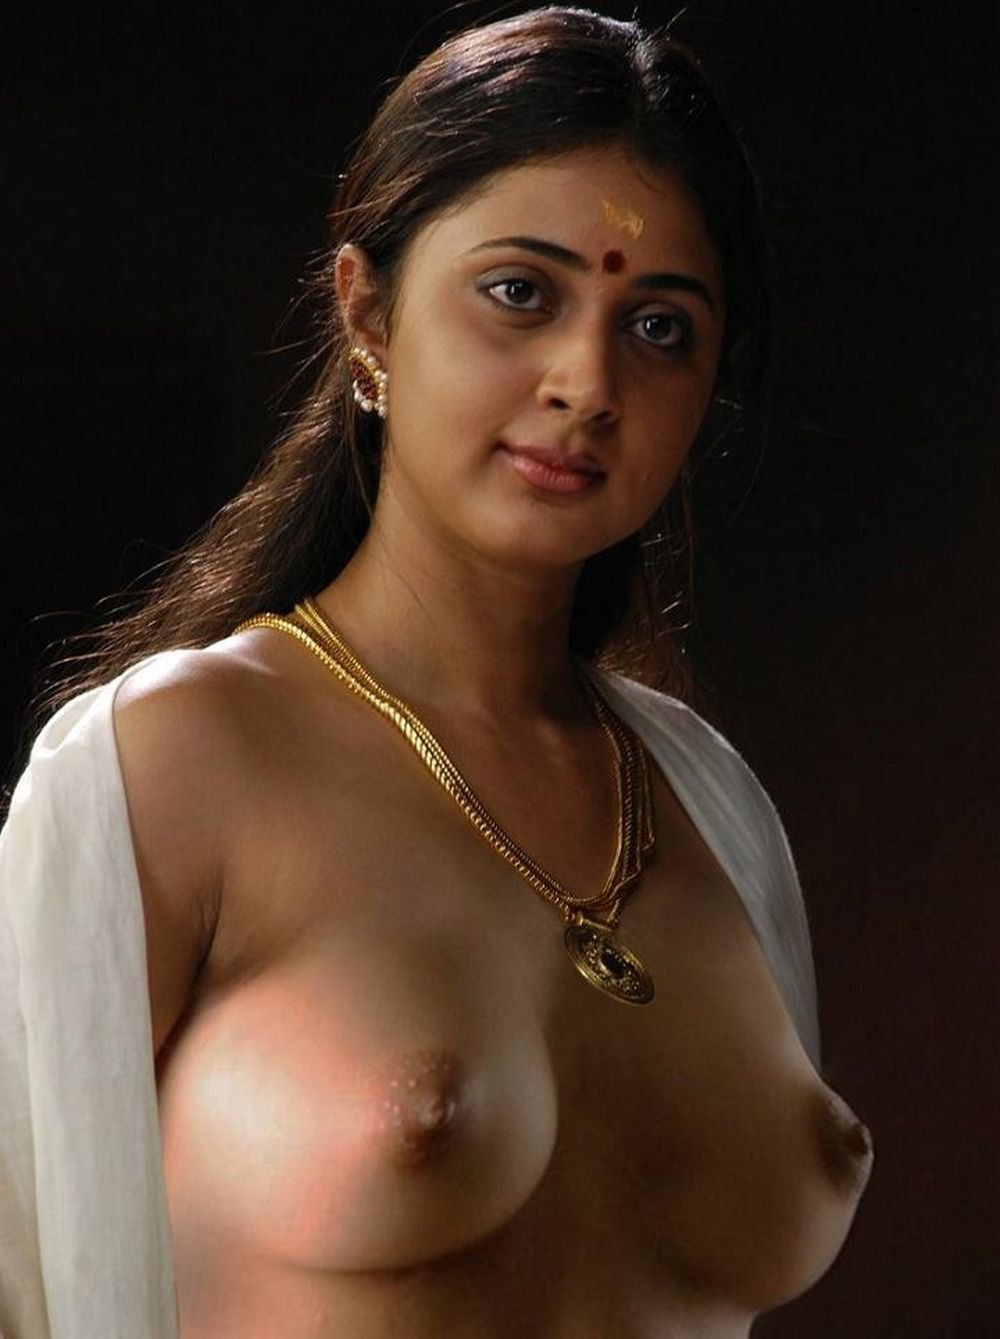 Seductive hot south indian sexy college girl xxx naked pics